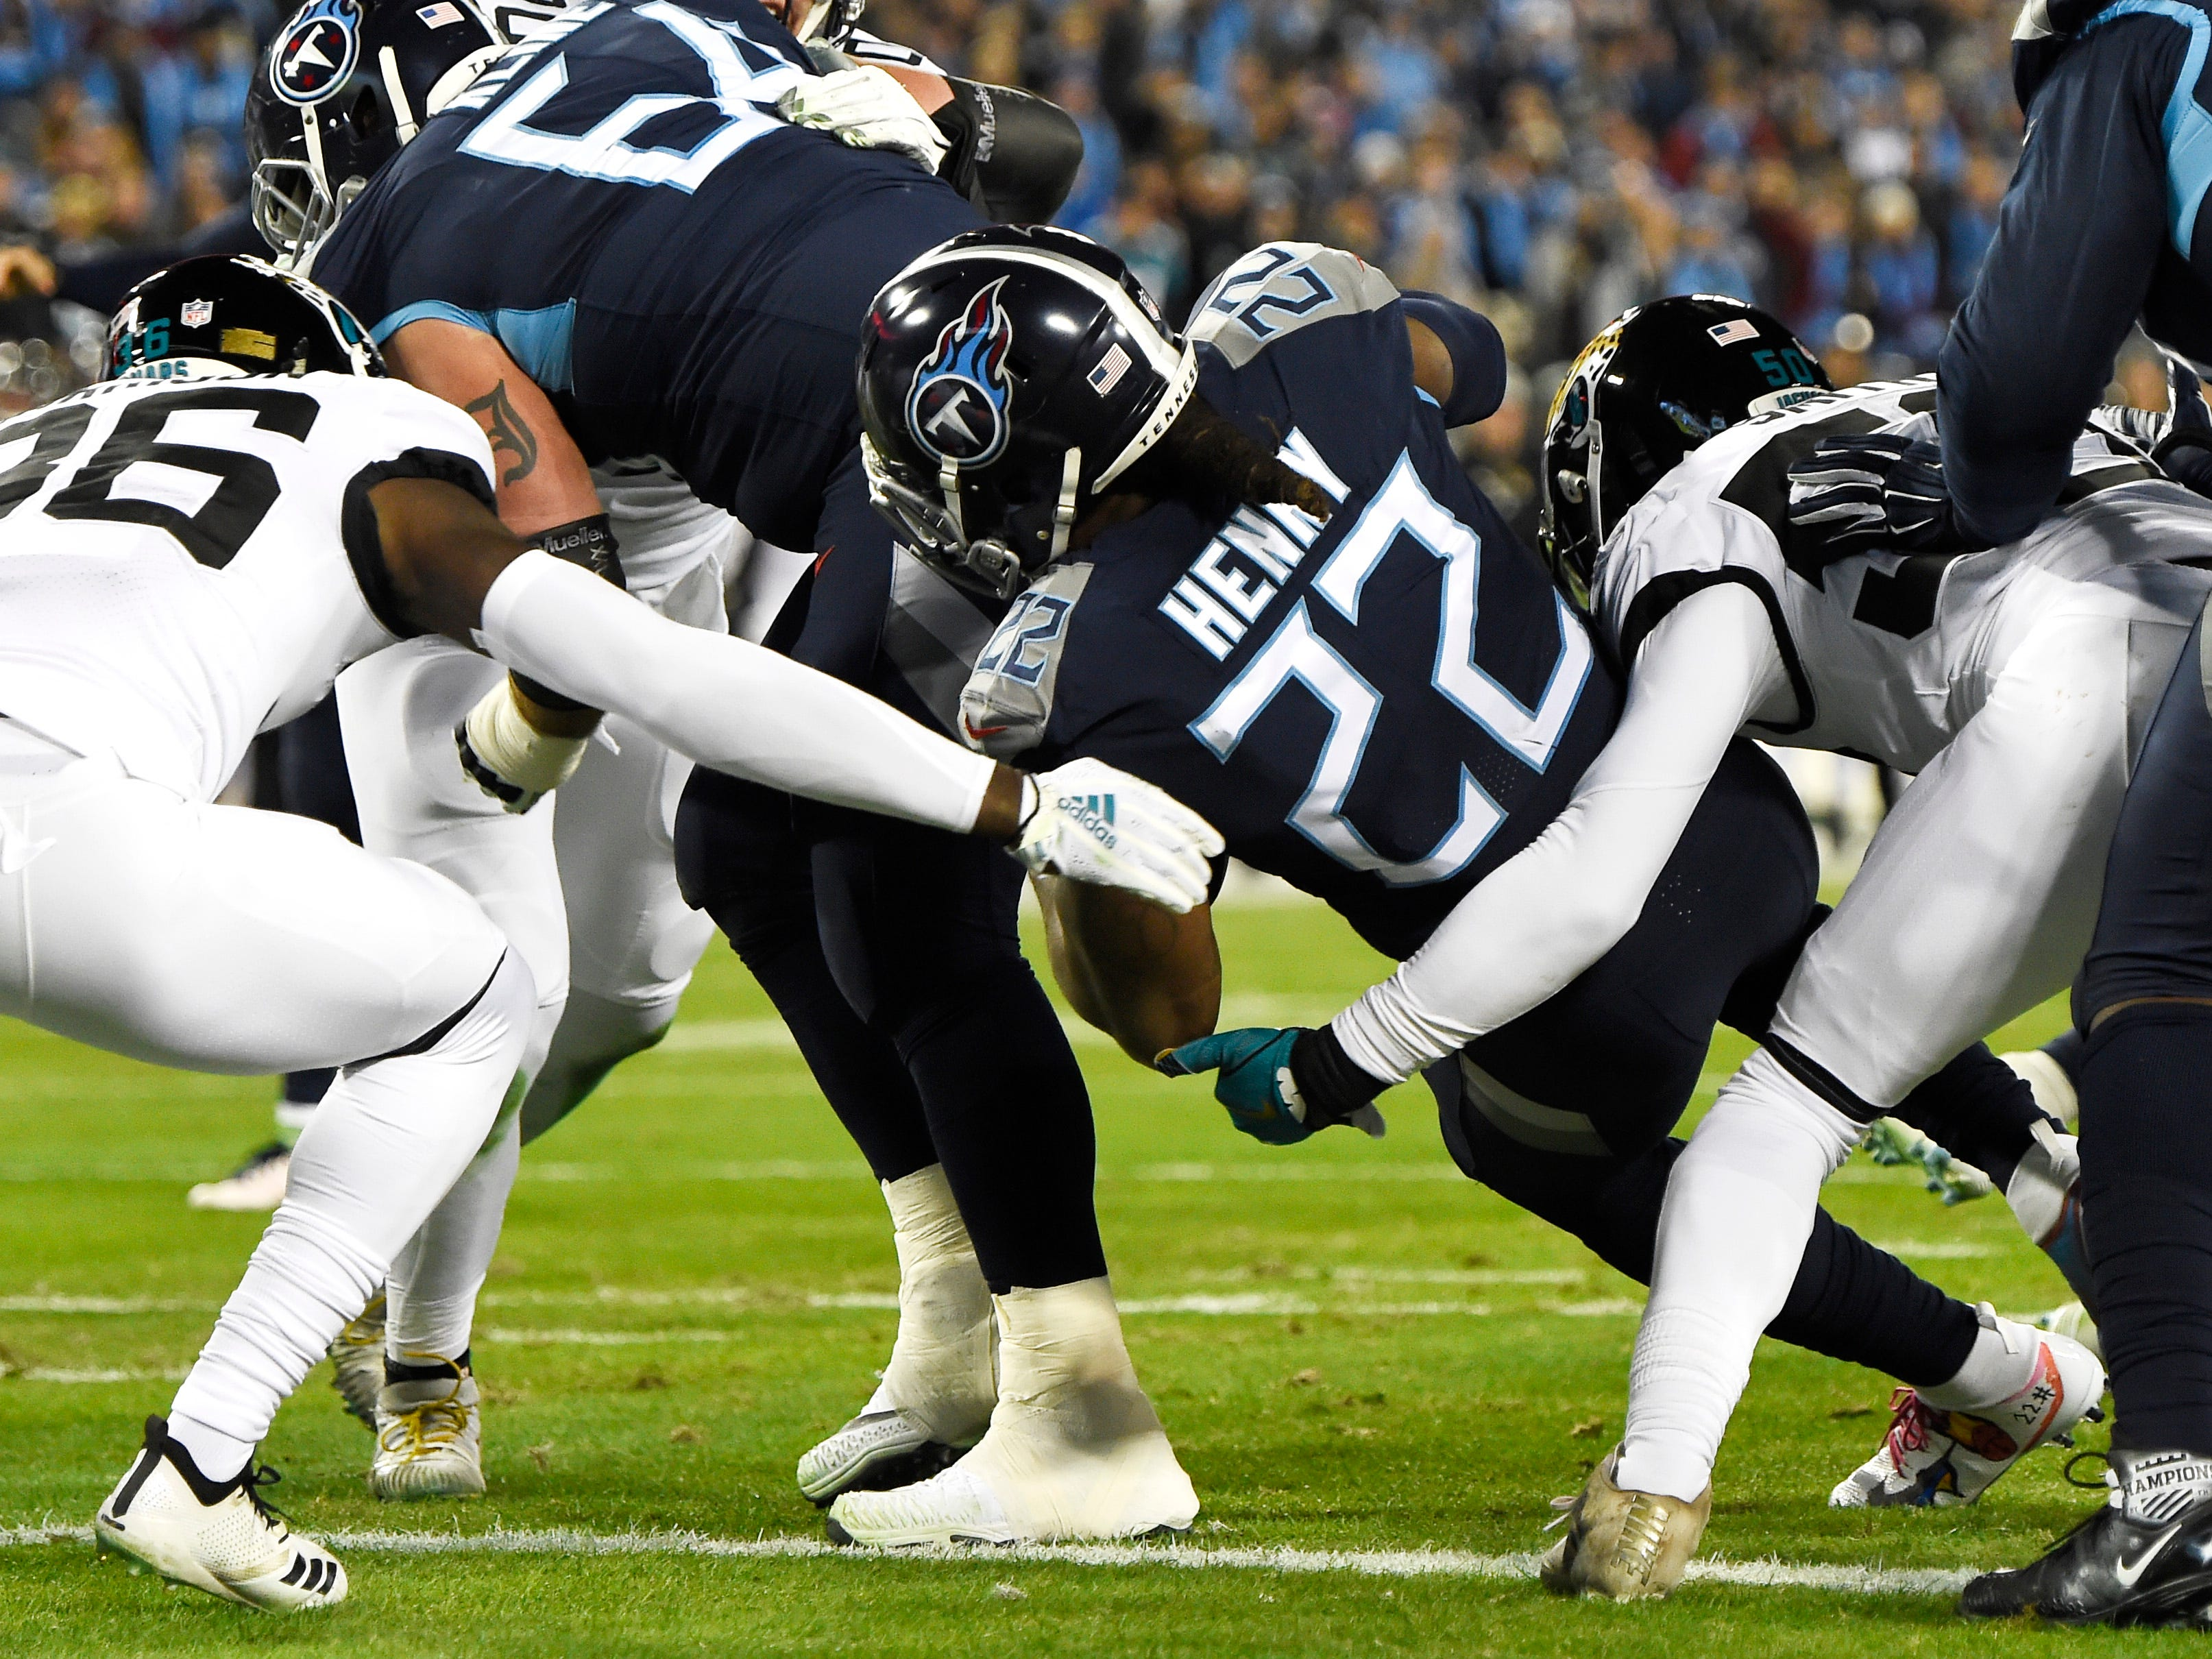 Titans running back Derrick Henry (22) scores his first touchdown against the Jags in the first quarter at Nissan Stadium Thursday, Dec. 6, 2018, in Nashville, Tenn.